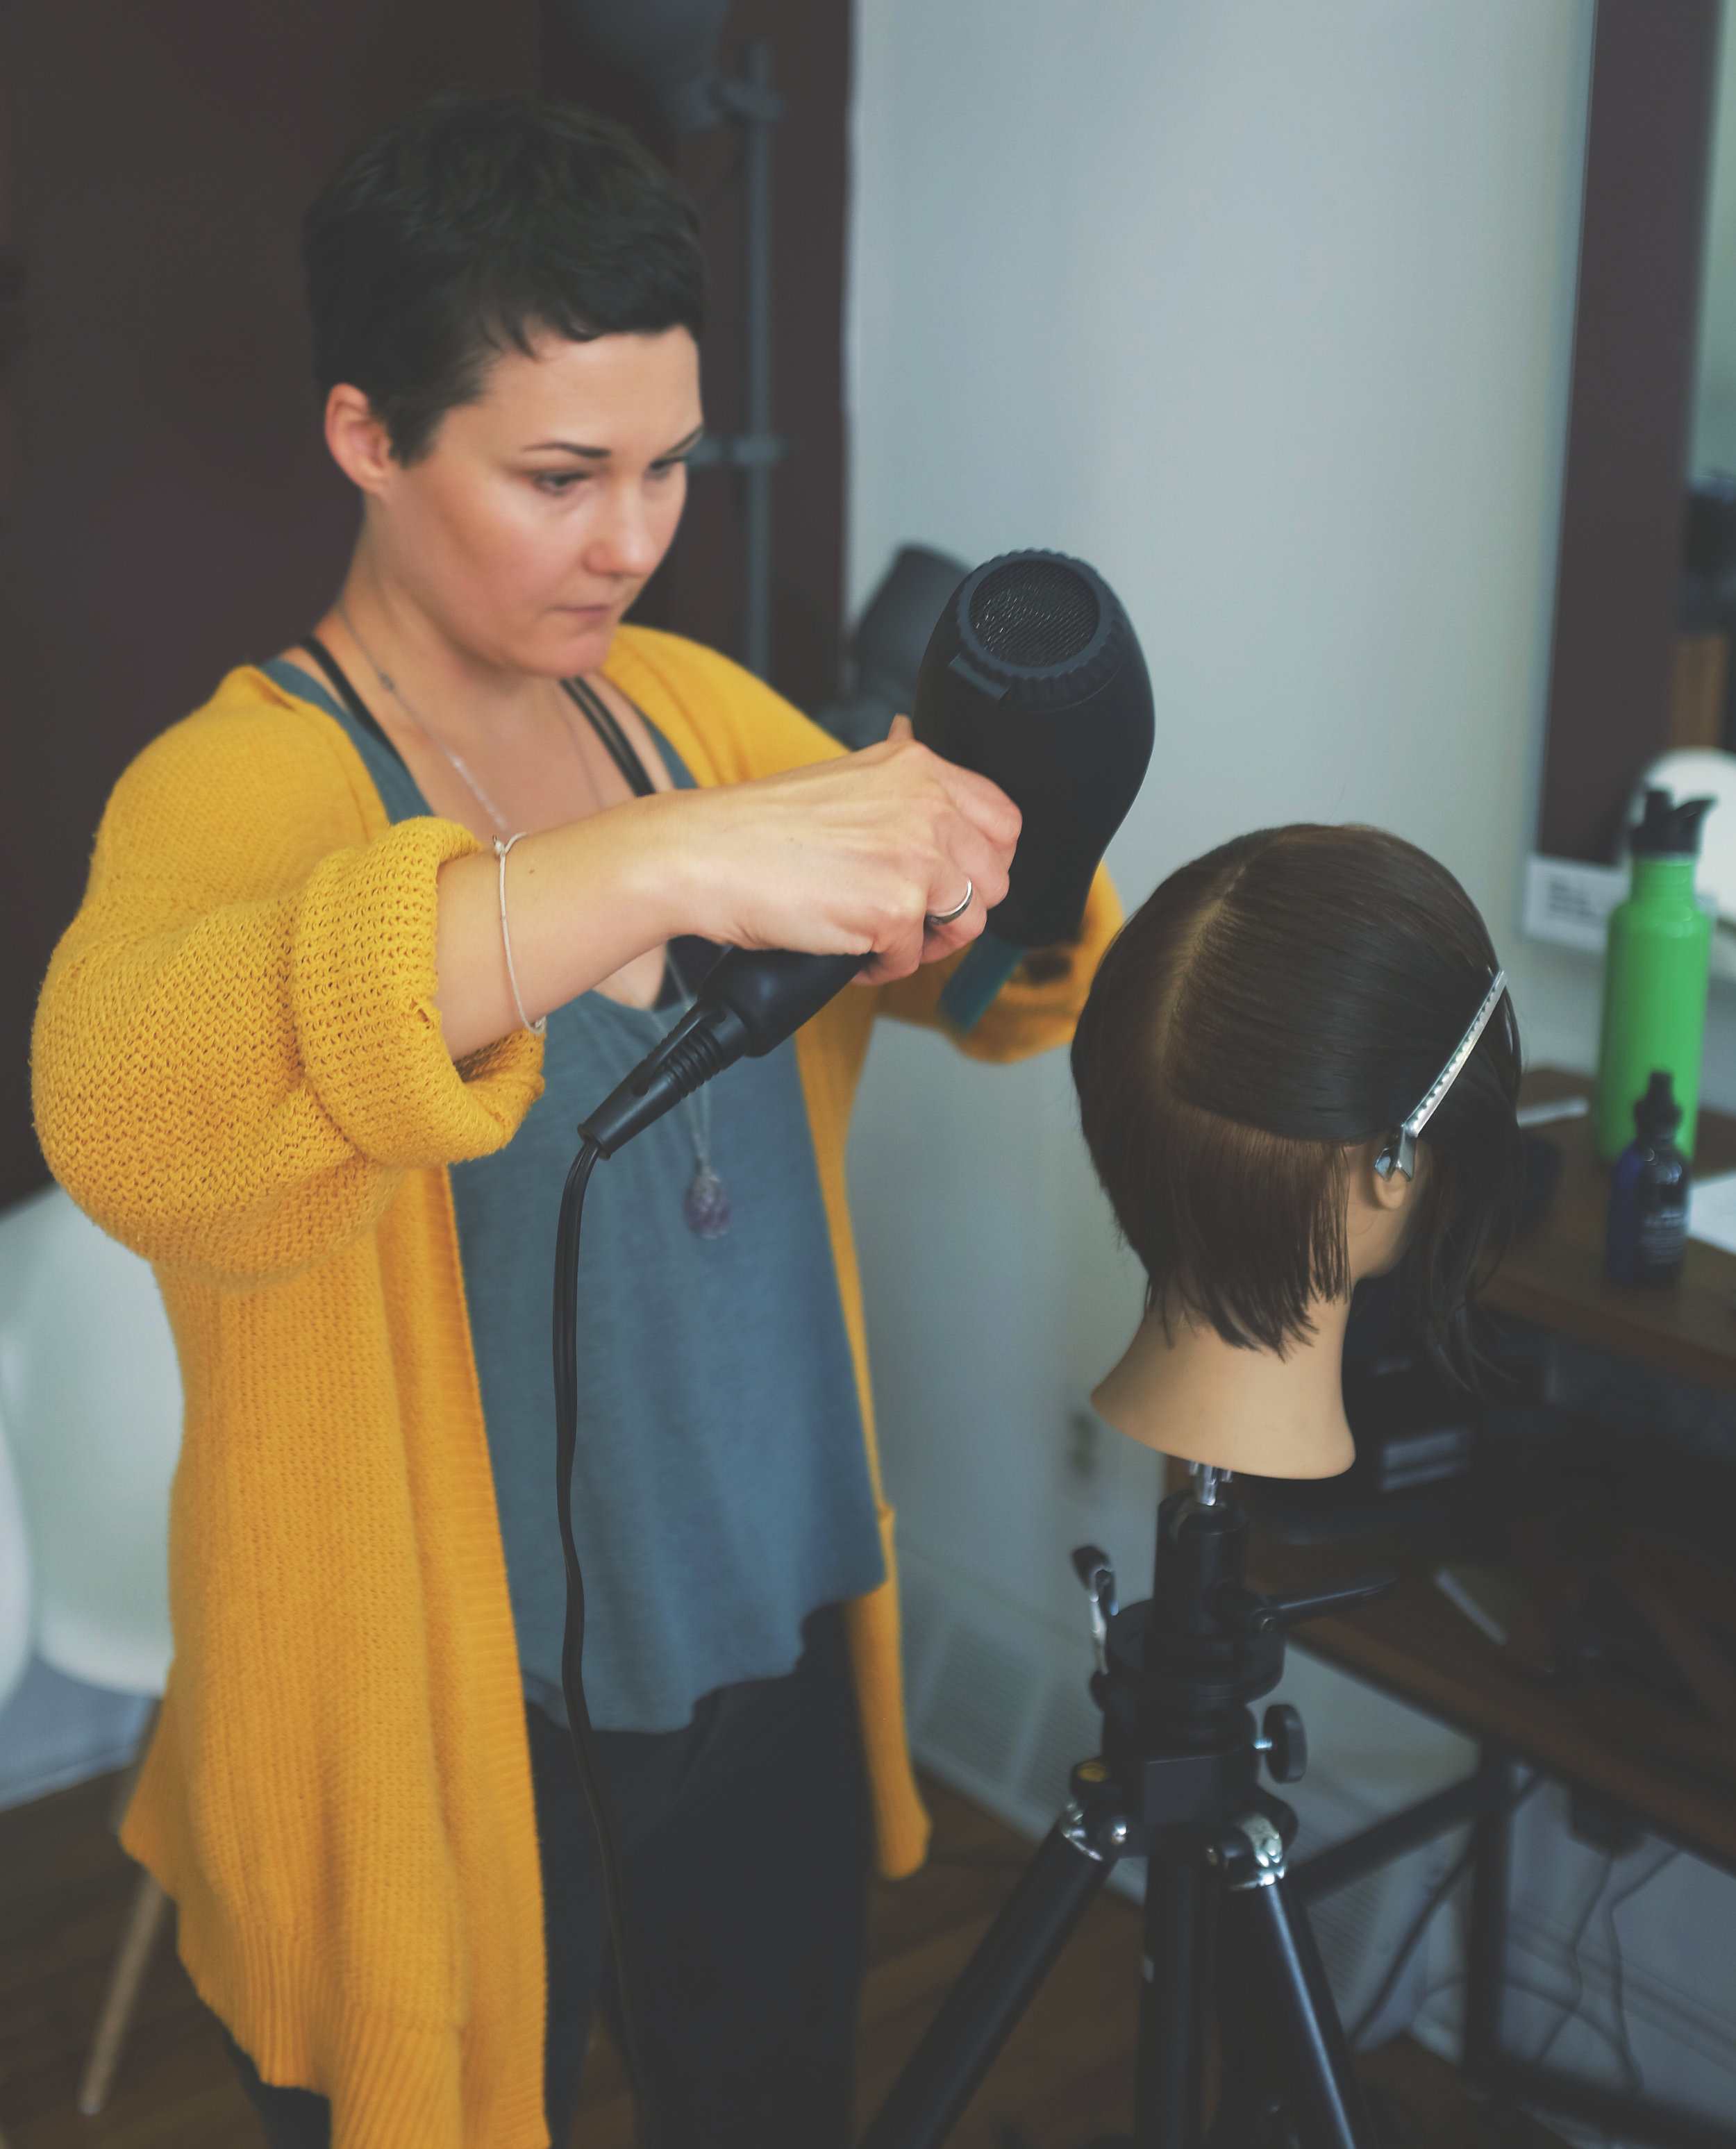 FOUNDATIONS - Foundations is designed for hairstylists who take their craft seriously, and wish to raise the standards of haircutting. This course is designed for hairstylists who are looking for a thoroughly structured classroom setting. It is not designed for hairstylists who are looking for the next